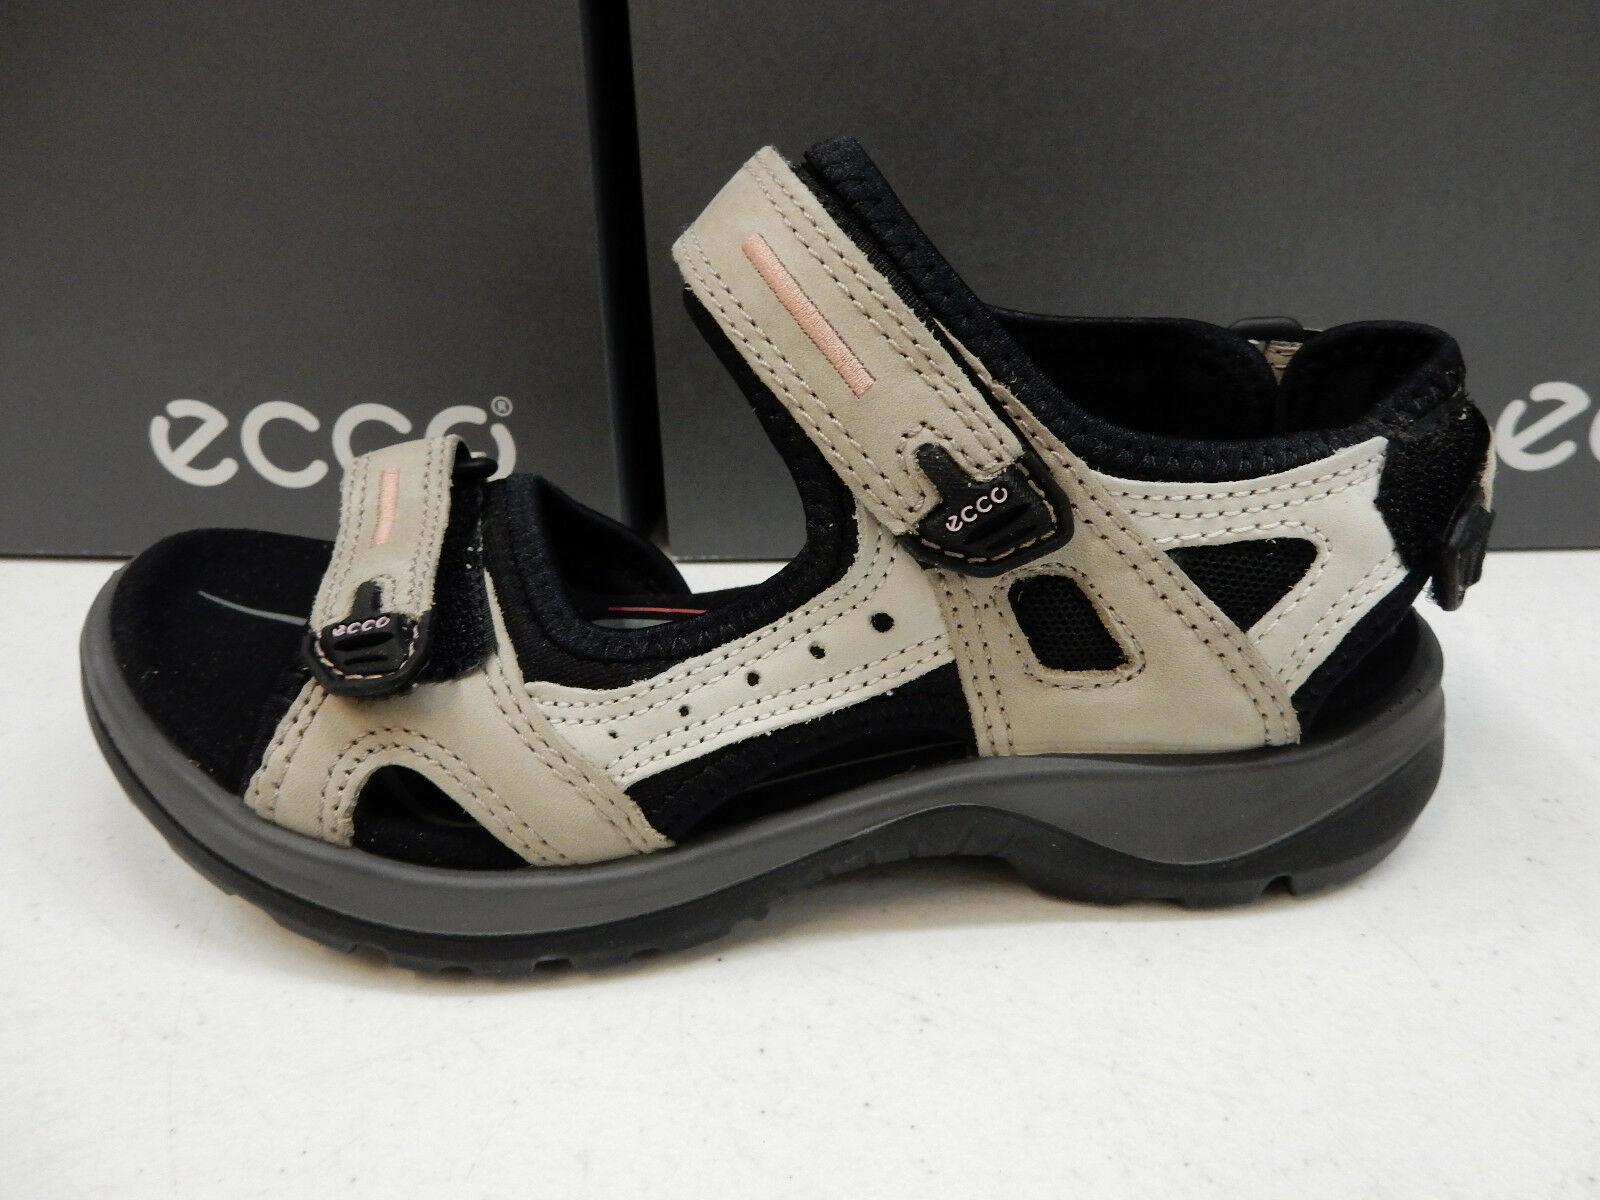 ECCO WOMENS SANDALS YUCATAN ATMOSPHERE ICE SIZE EU 37 37 37 18f7b2